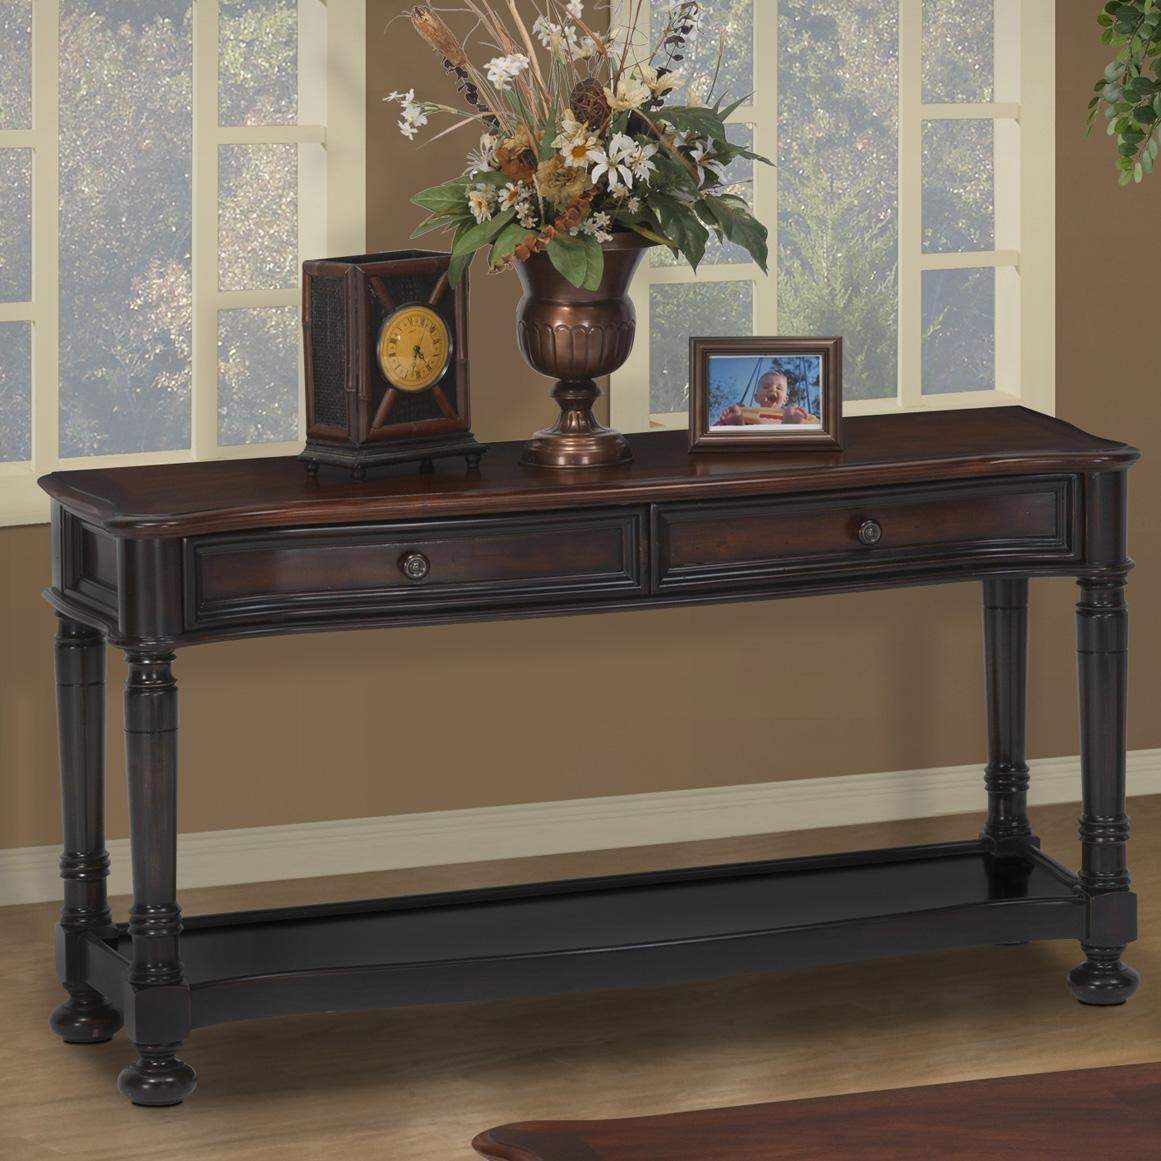 Black End Tables With Drawer Jamaica Two Tone Sofa Table With 2 Drawers And Shelf By New Classic At Dunk Bright Furniture